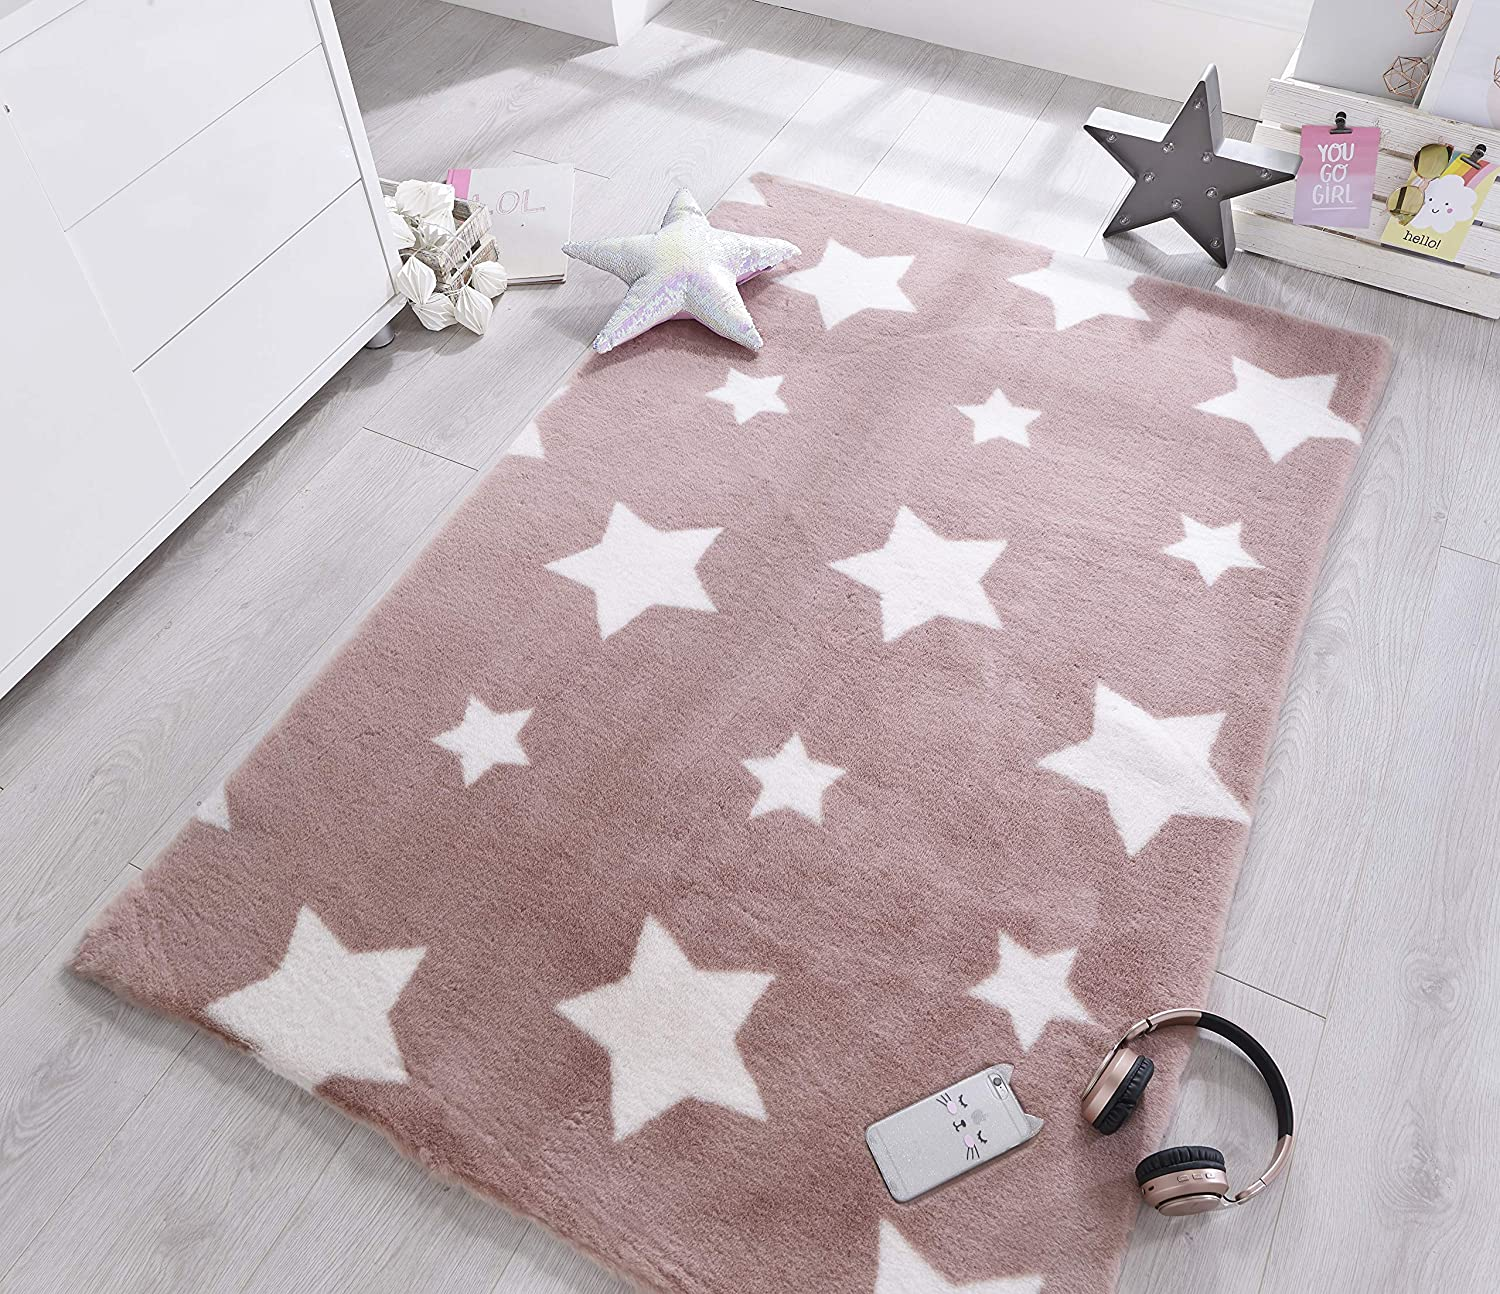 Nursery Carpet LordofRugs Playful Cosmic Star Design Soft Kids Baby Room Rug in 90 x 150 cm CANDY FLOSS PINK 2/'9 x5/'9